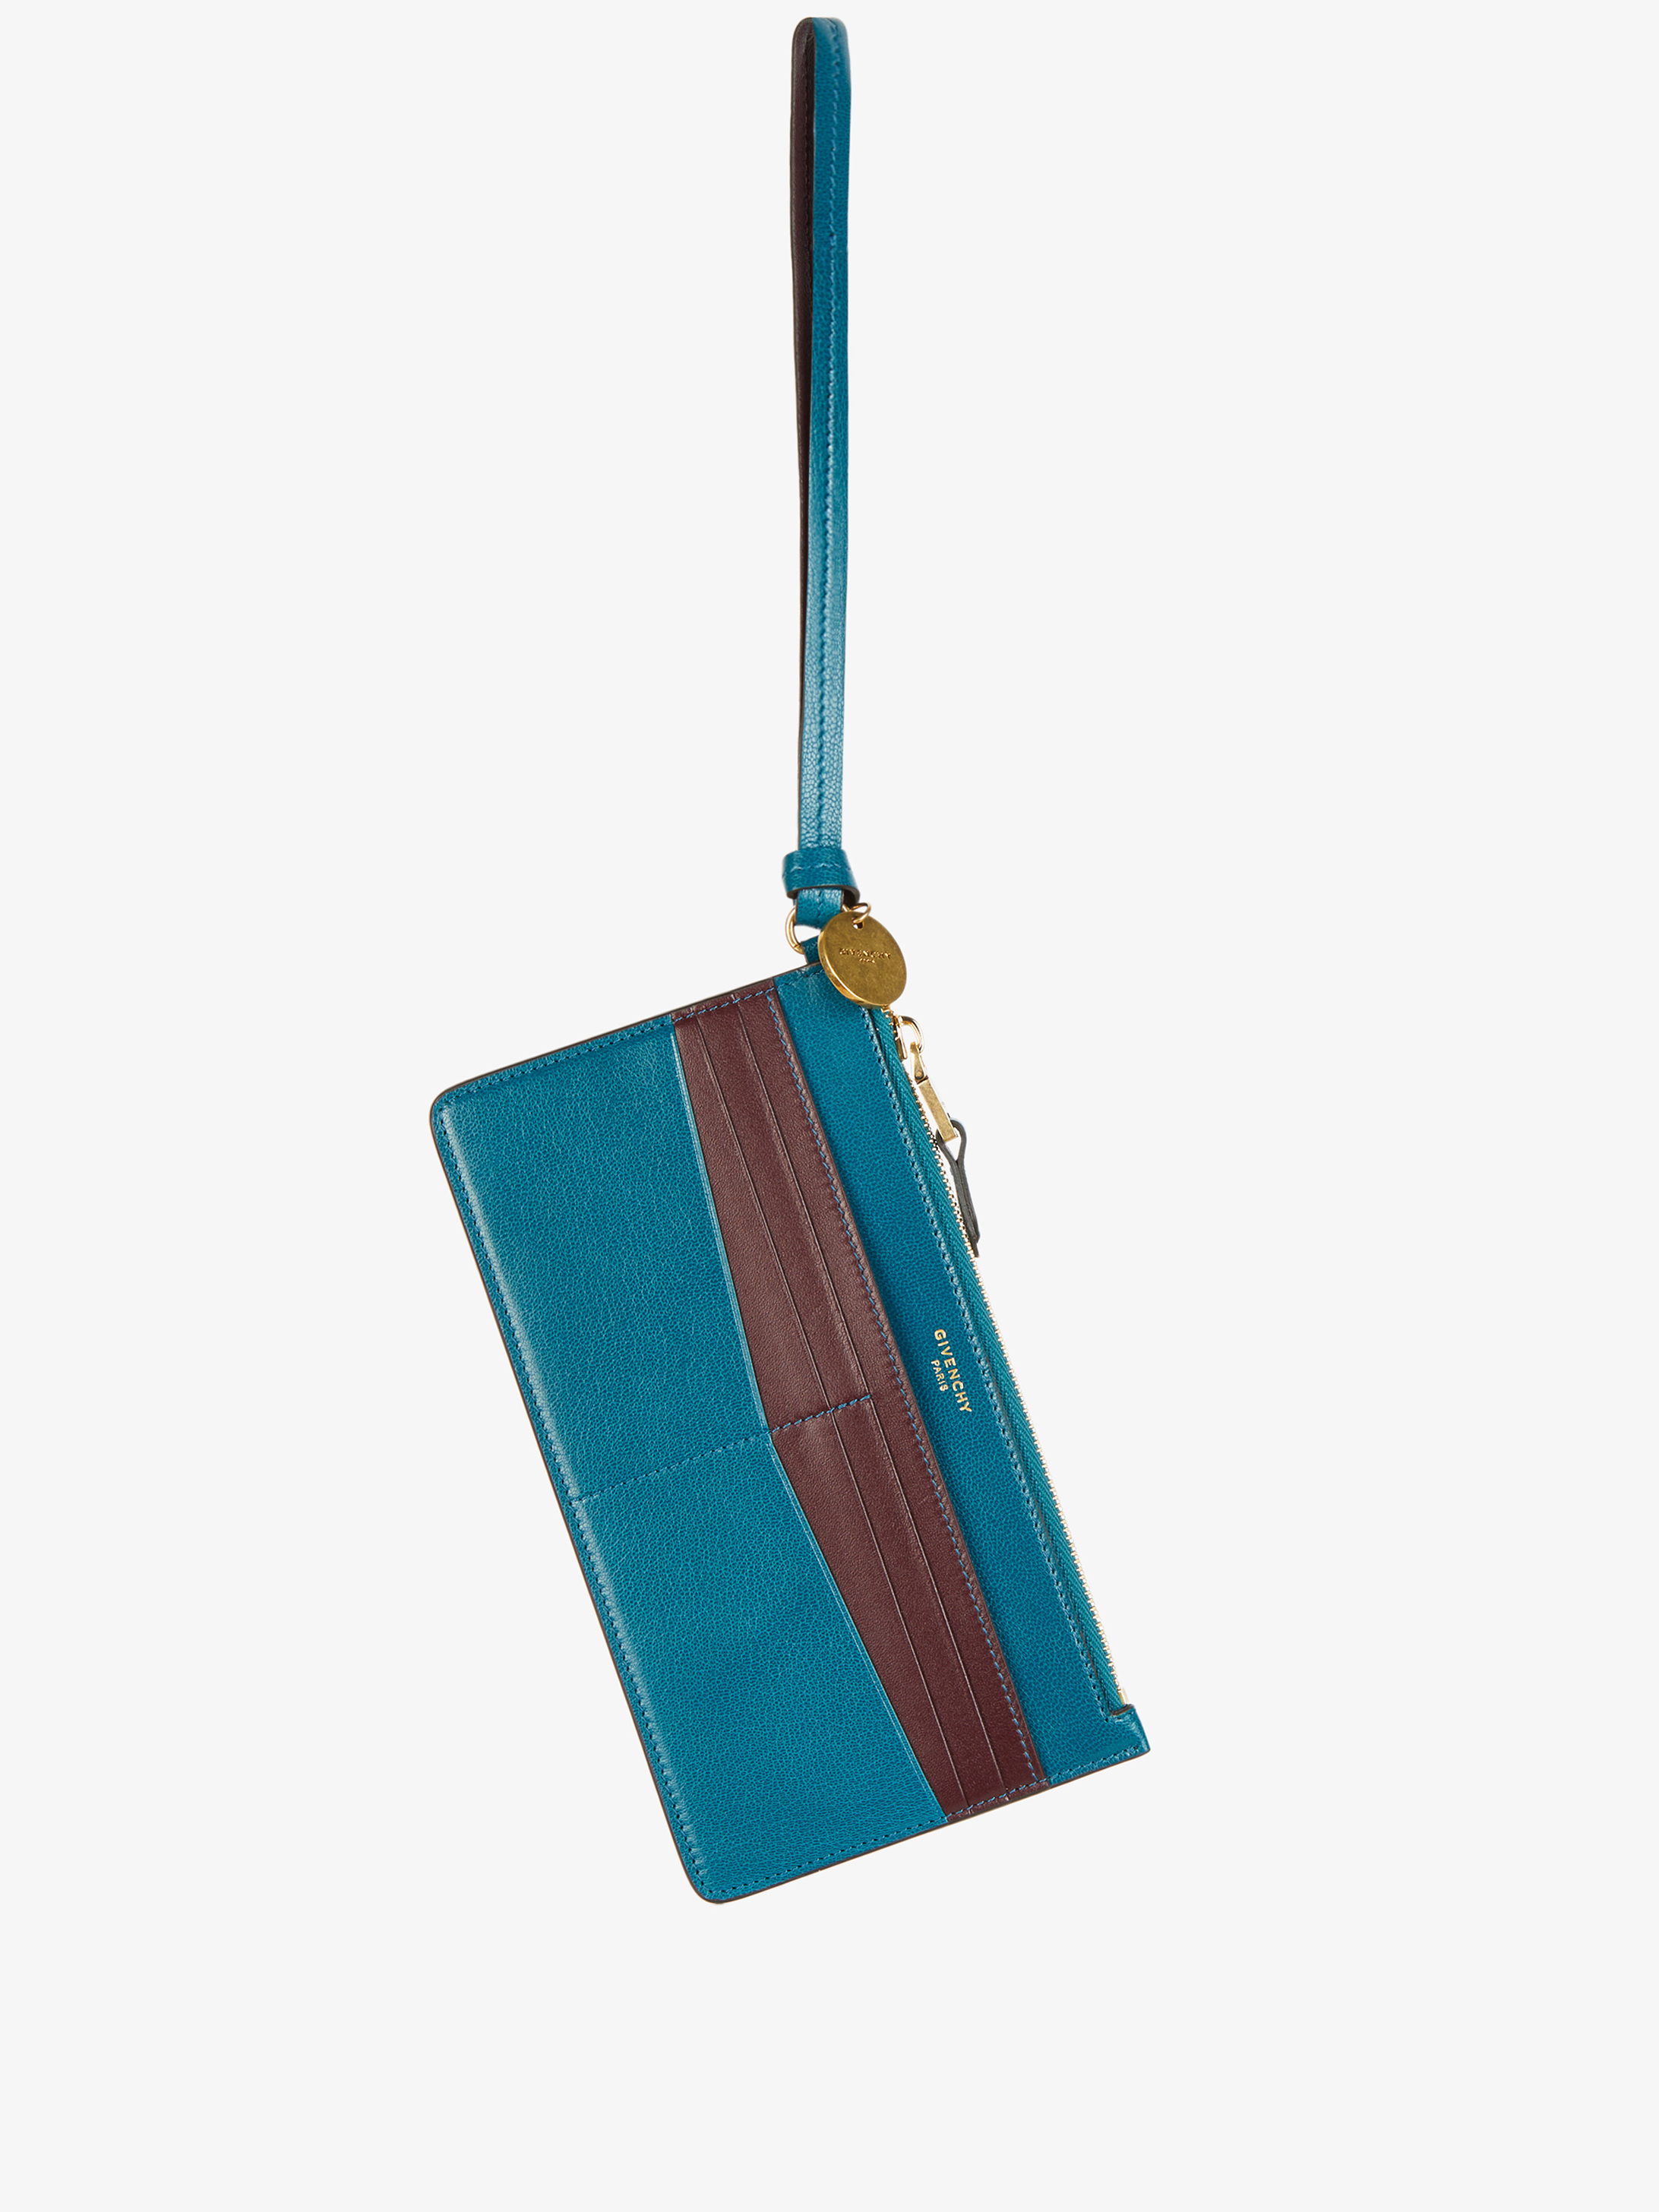 Long zipped card case in two-toned leather with wristlet